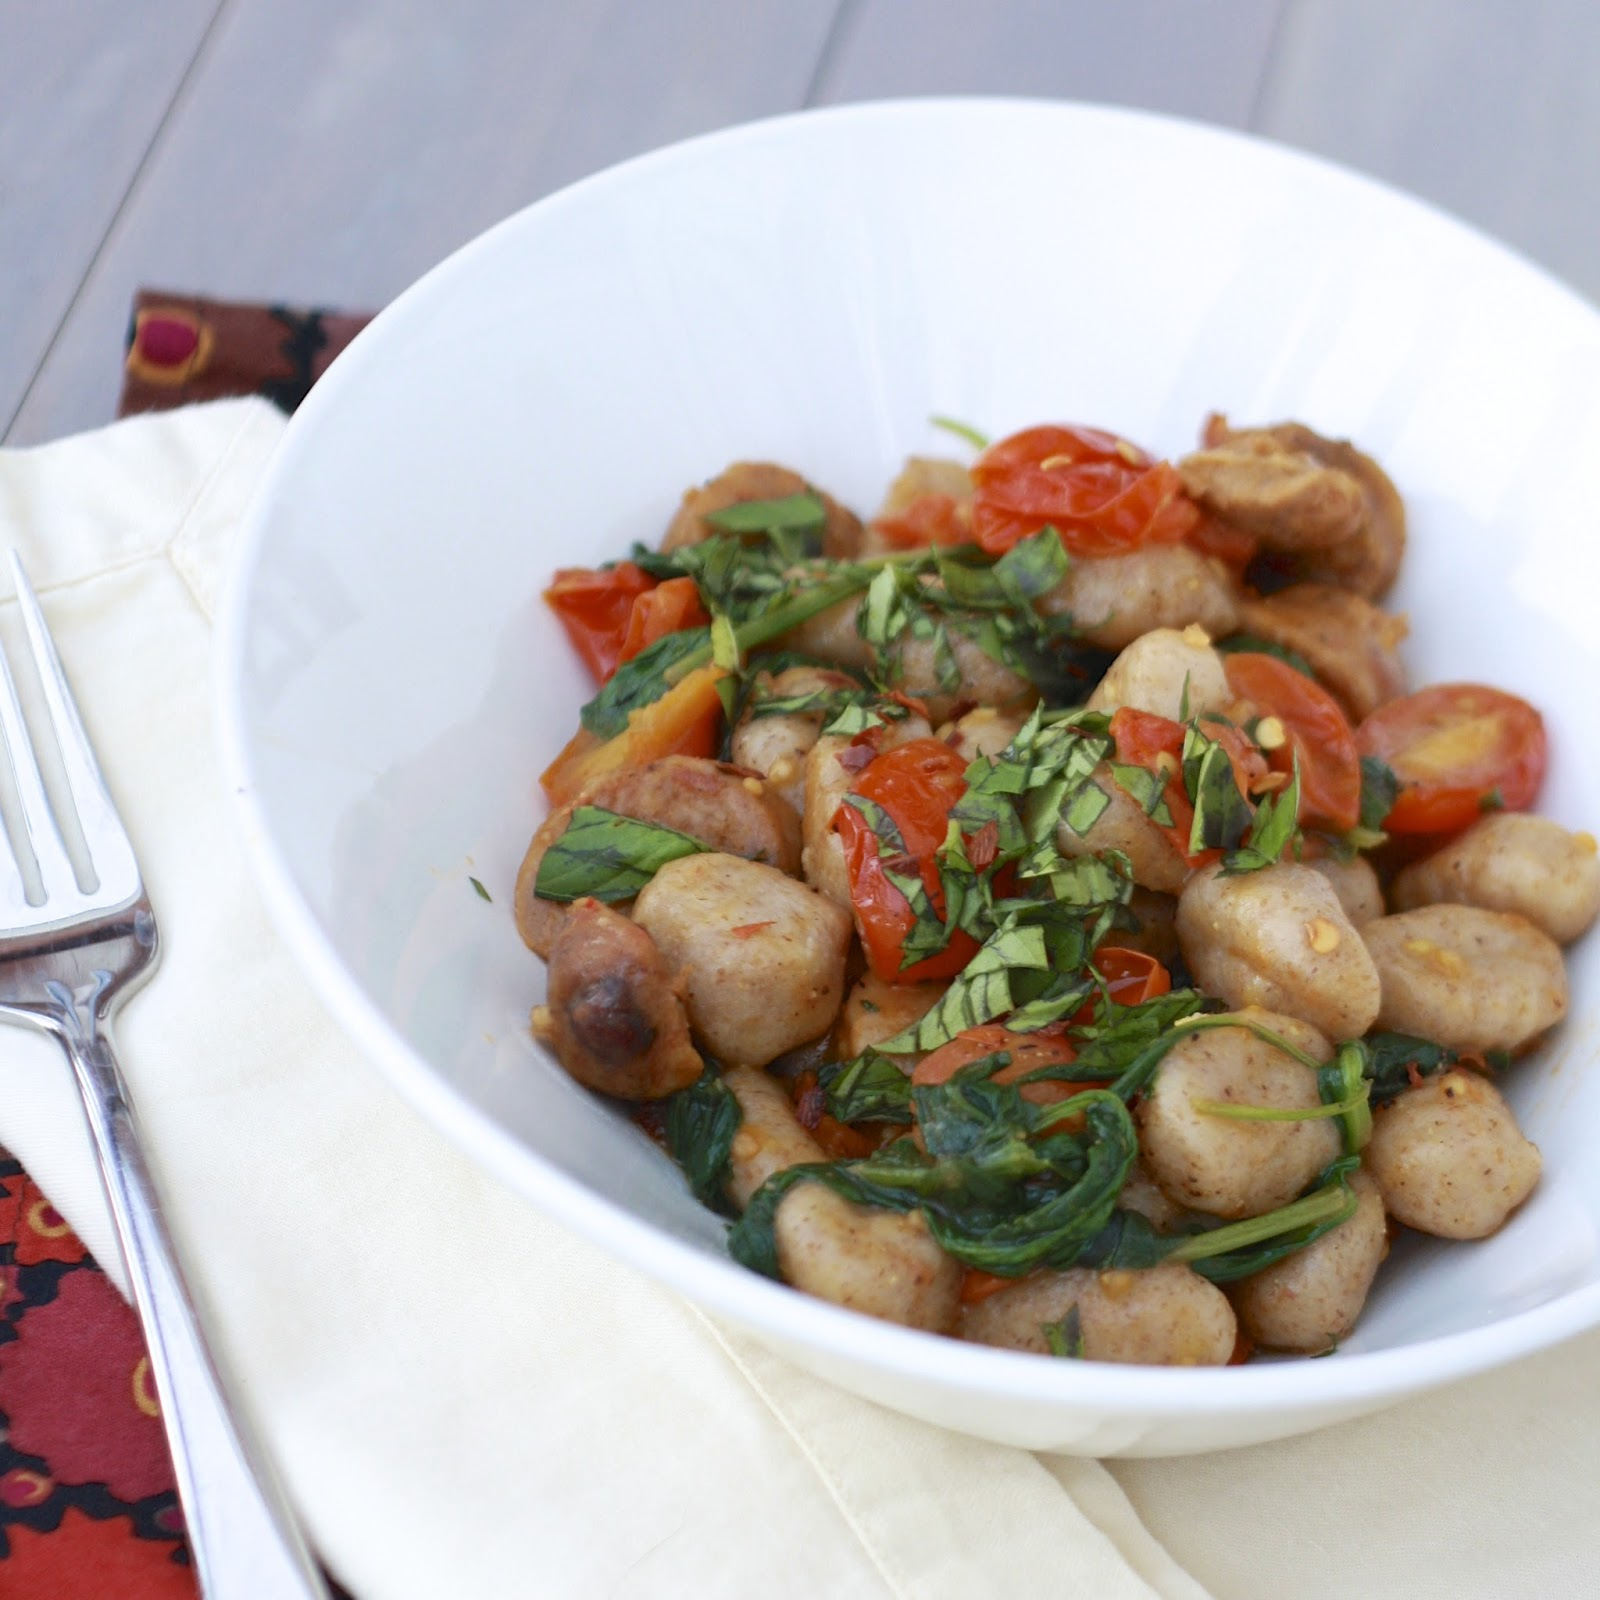 Skillet Gnocchi with Sausage, Spinach, and Tomatoes | The Sweets Life